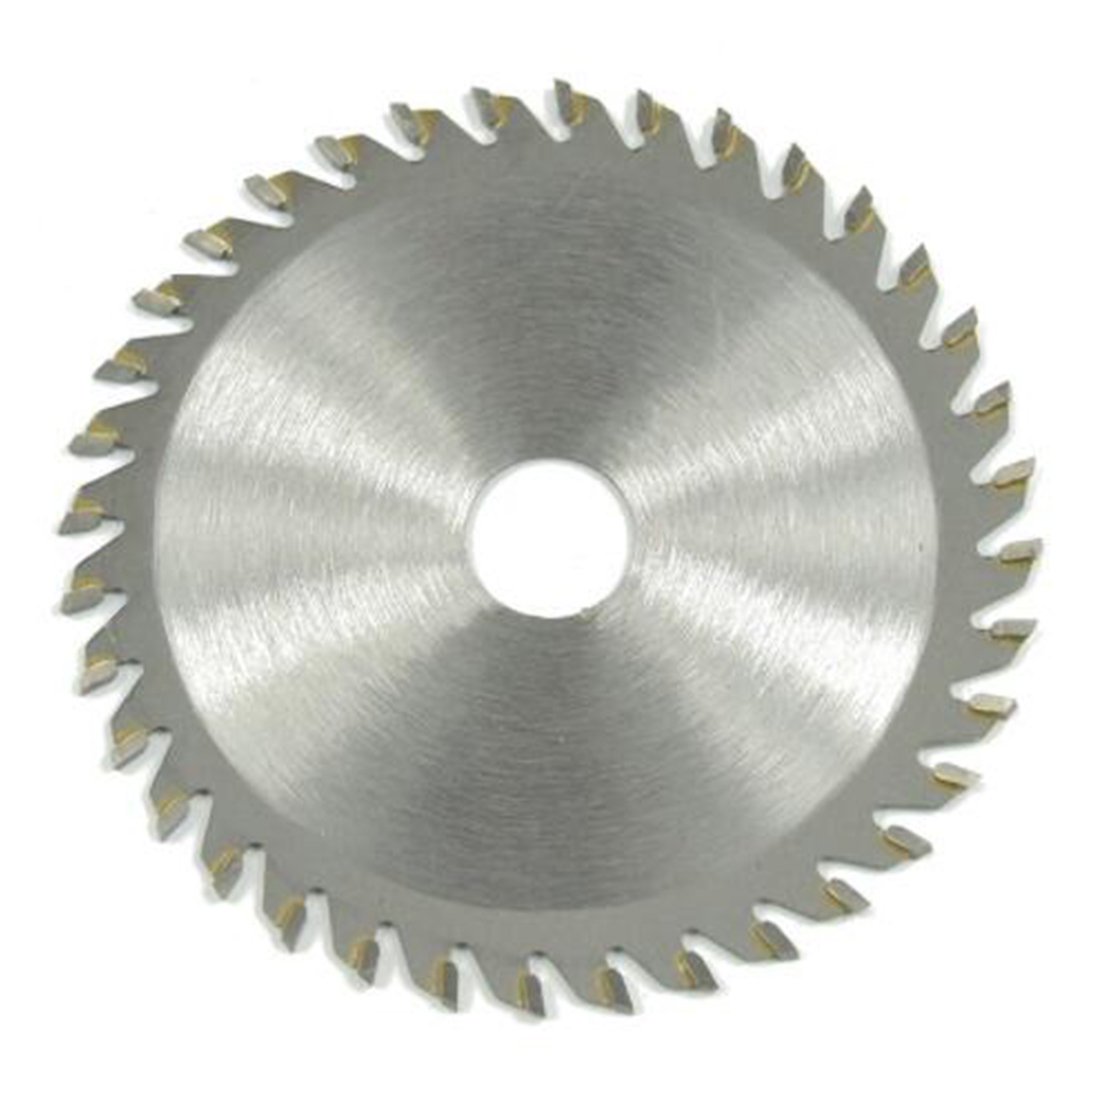 Circular Saw Blade 85 Mm Diameter 36T TCT Tungsten Carbide Mini Circular Saw Blade For Wood Cutting Power Tool Accessories